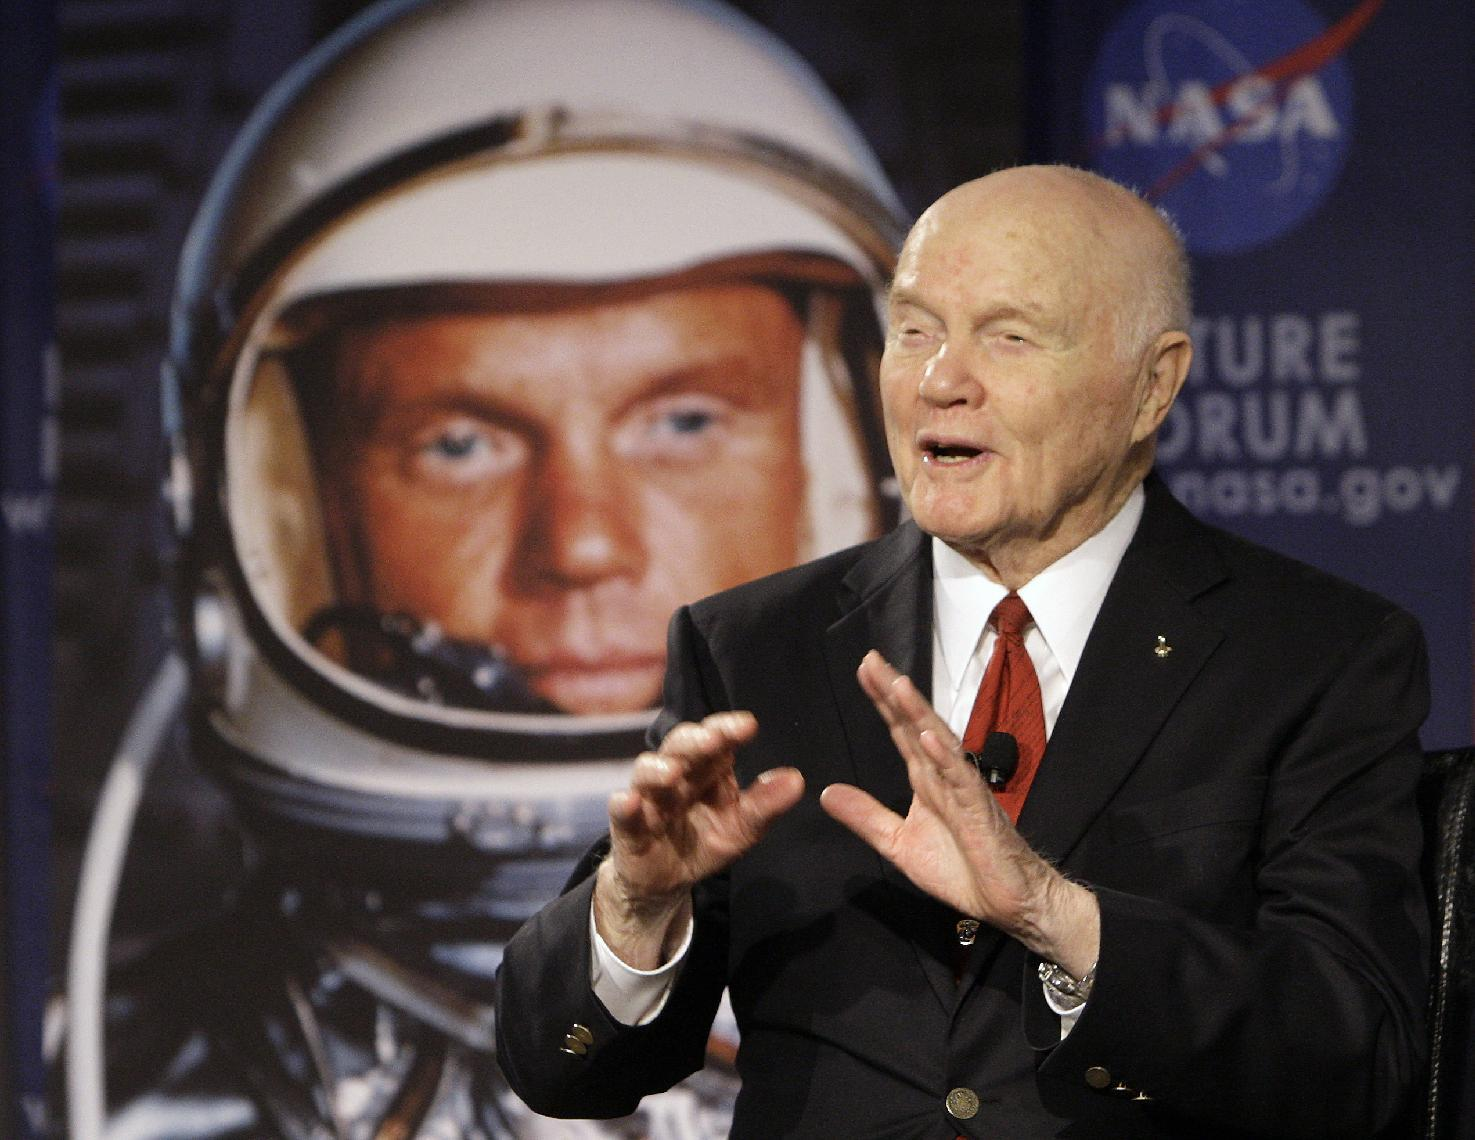 John Glenn, the 1st American to orbit Earth, has died at 95